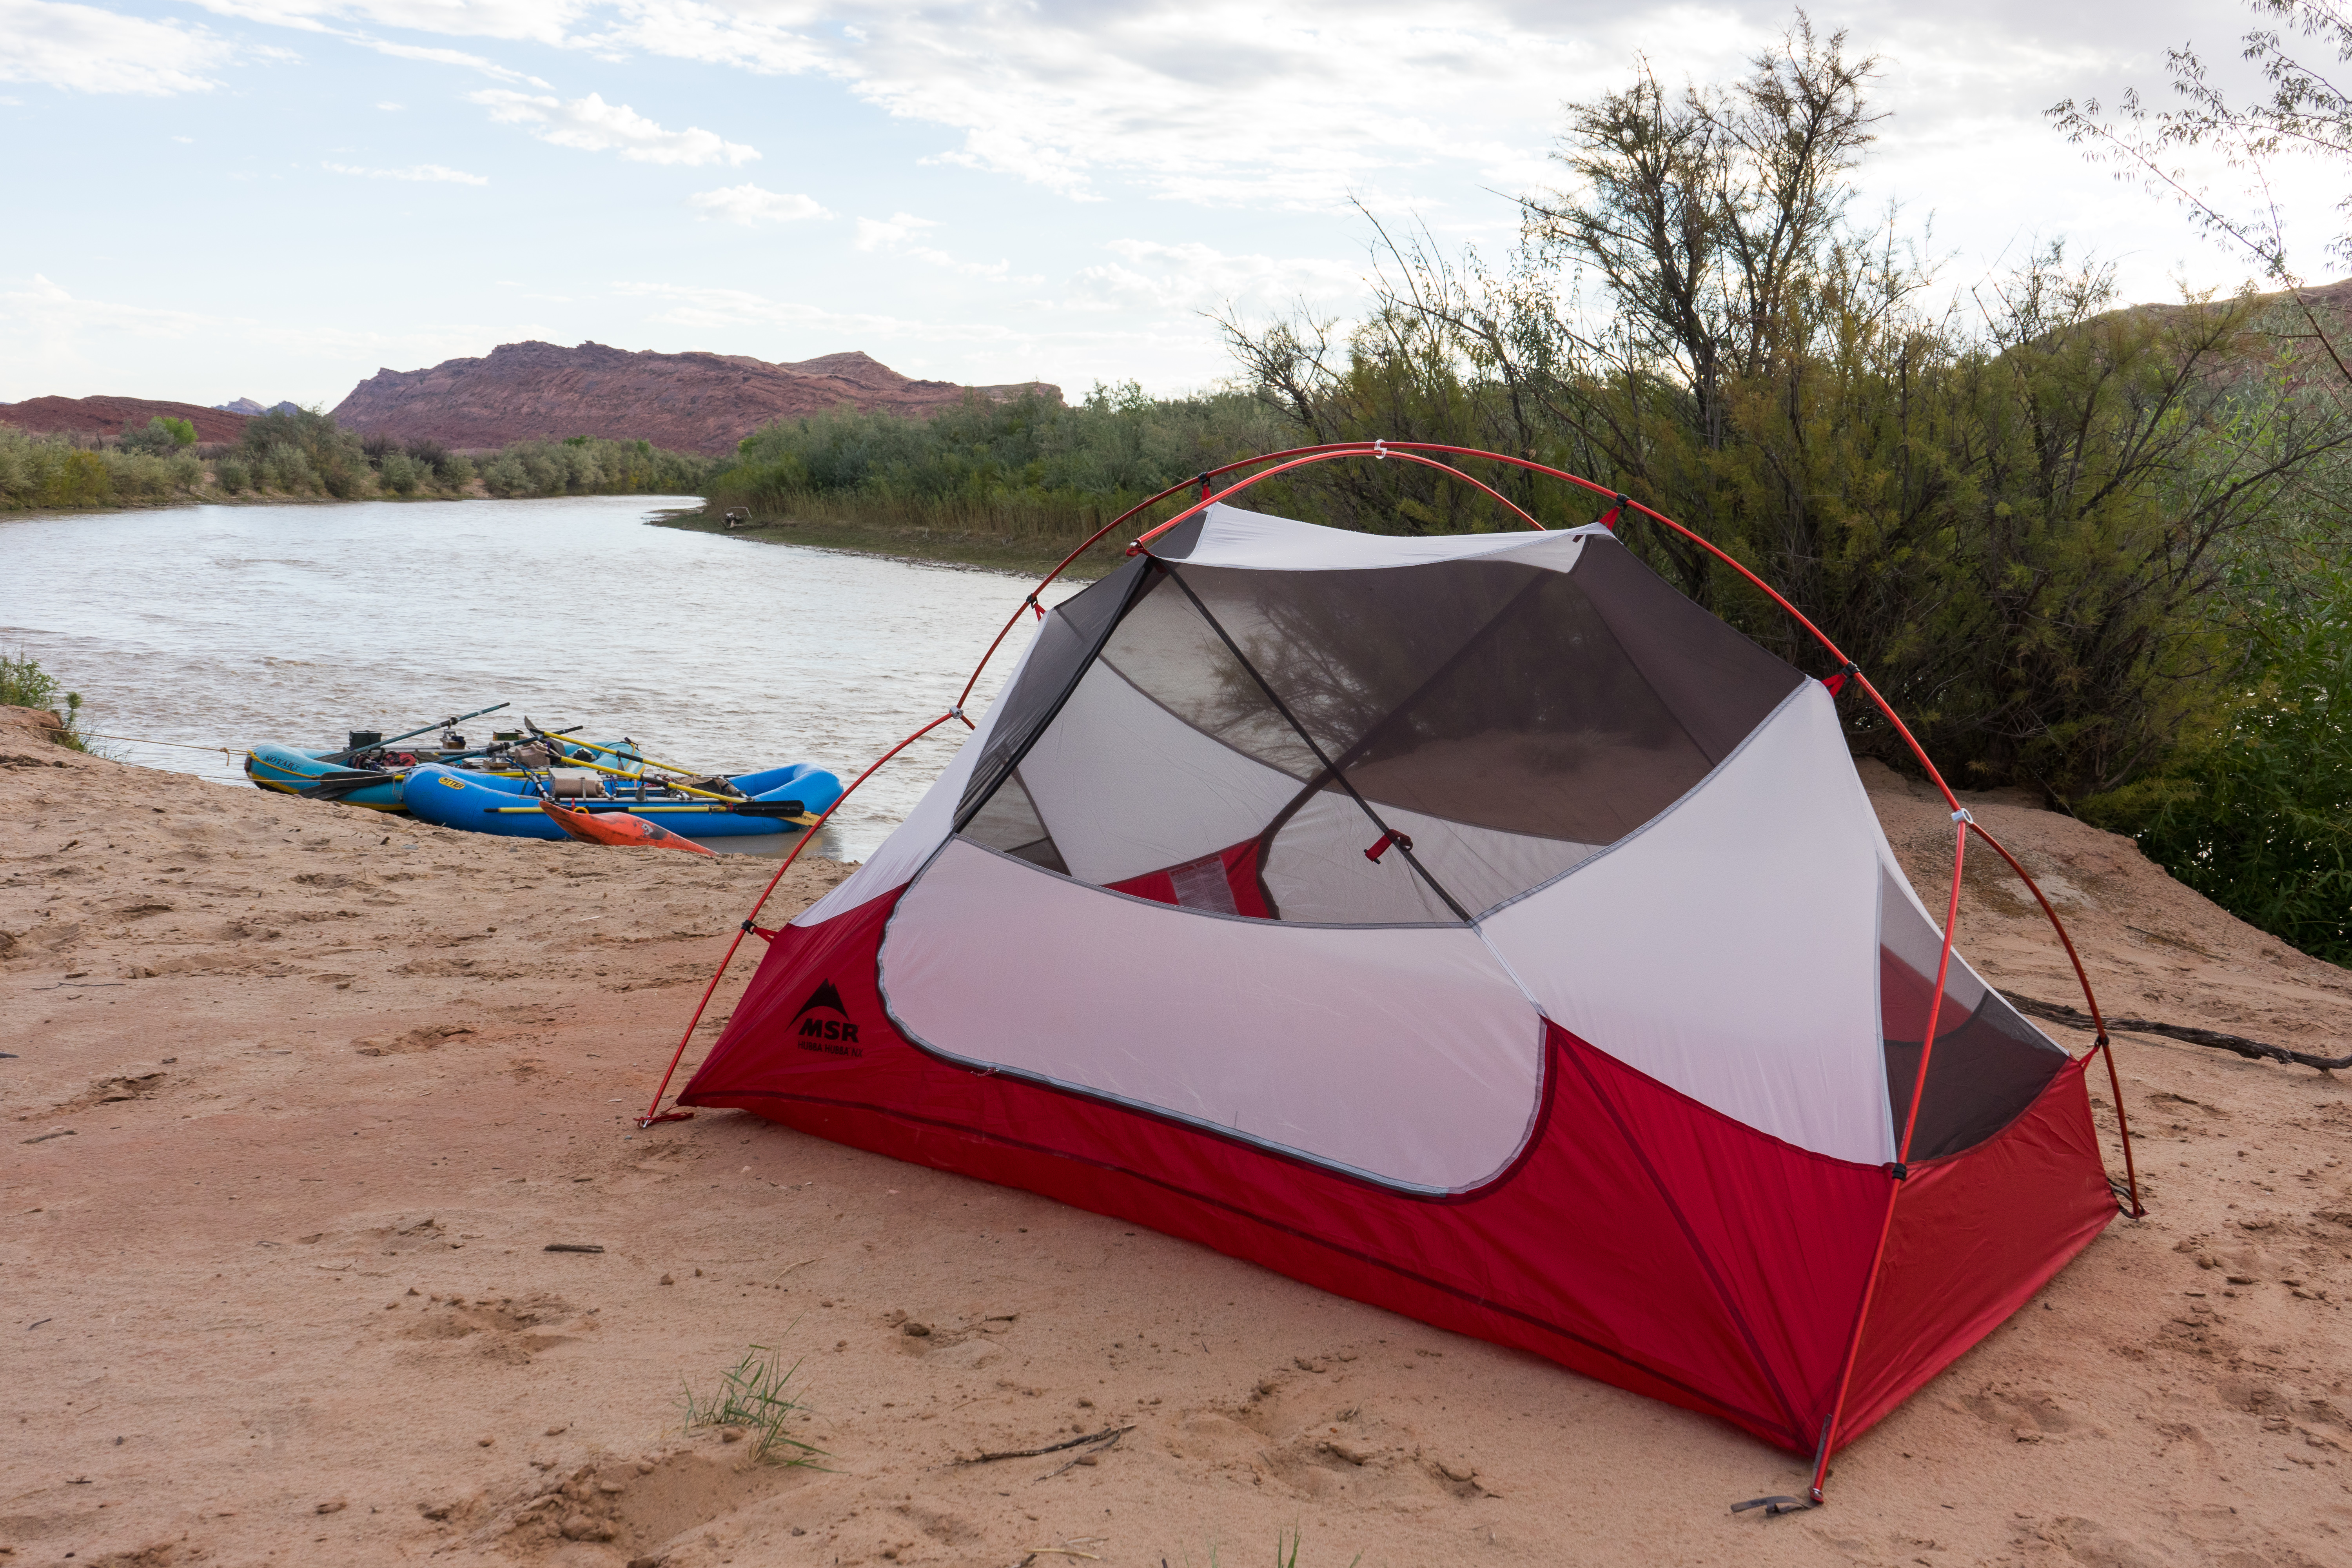 Gear Review  MSR Hubba Hubba NX 2 Tent - Outdoor Project c98ebc8ccd